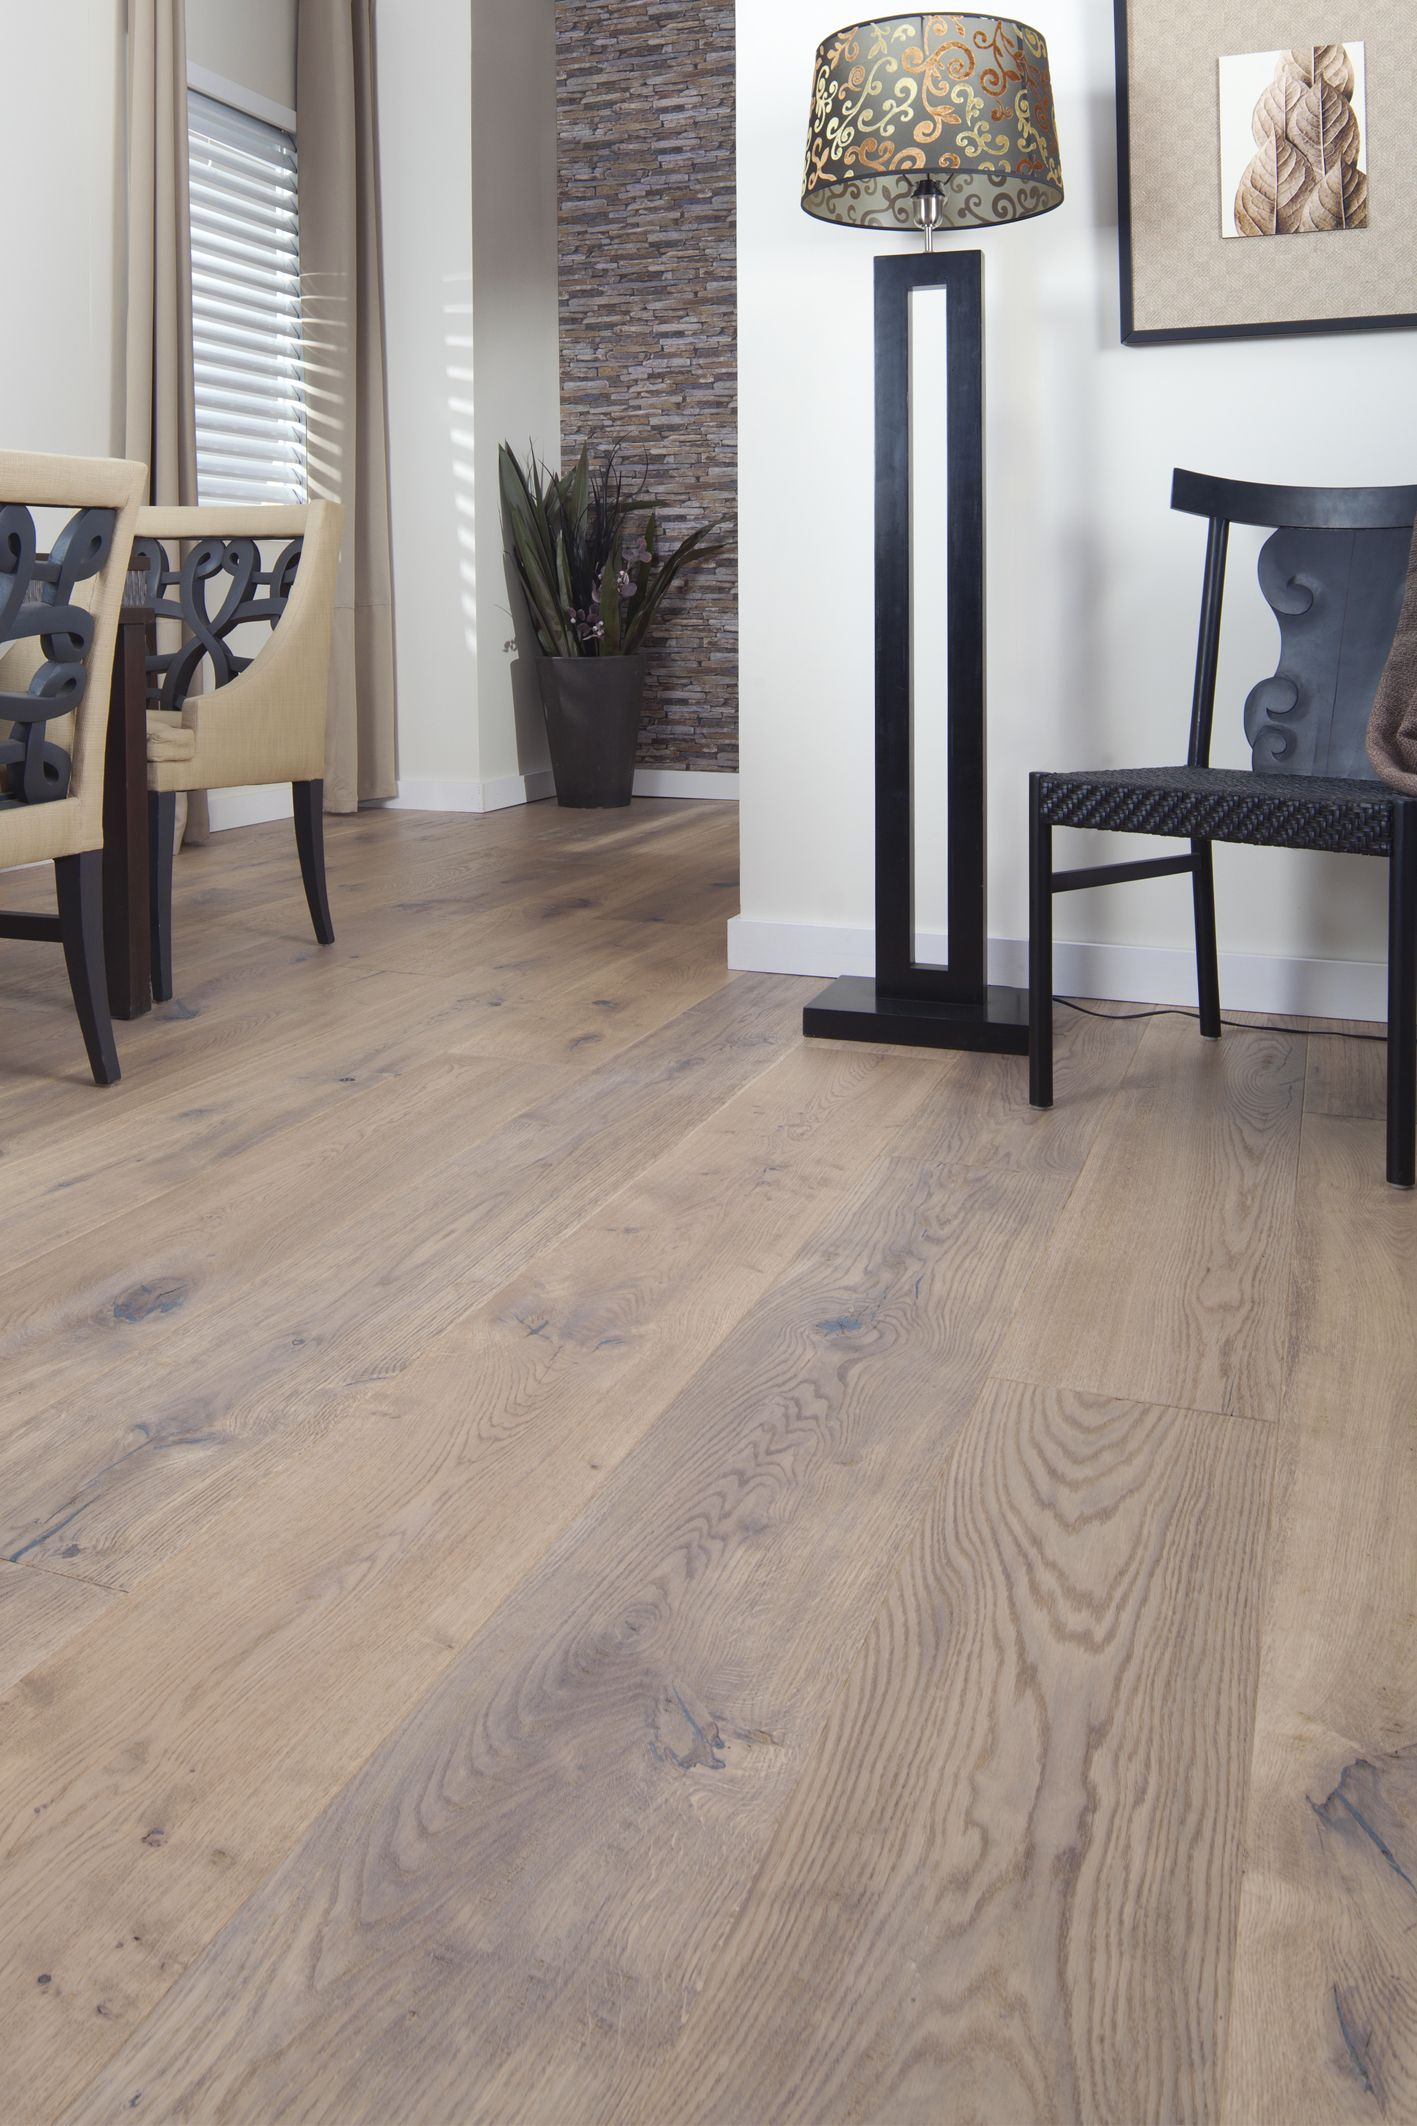 French Oak Flooring By Arrow Sun Australia Wild Oak Lille